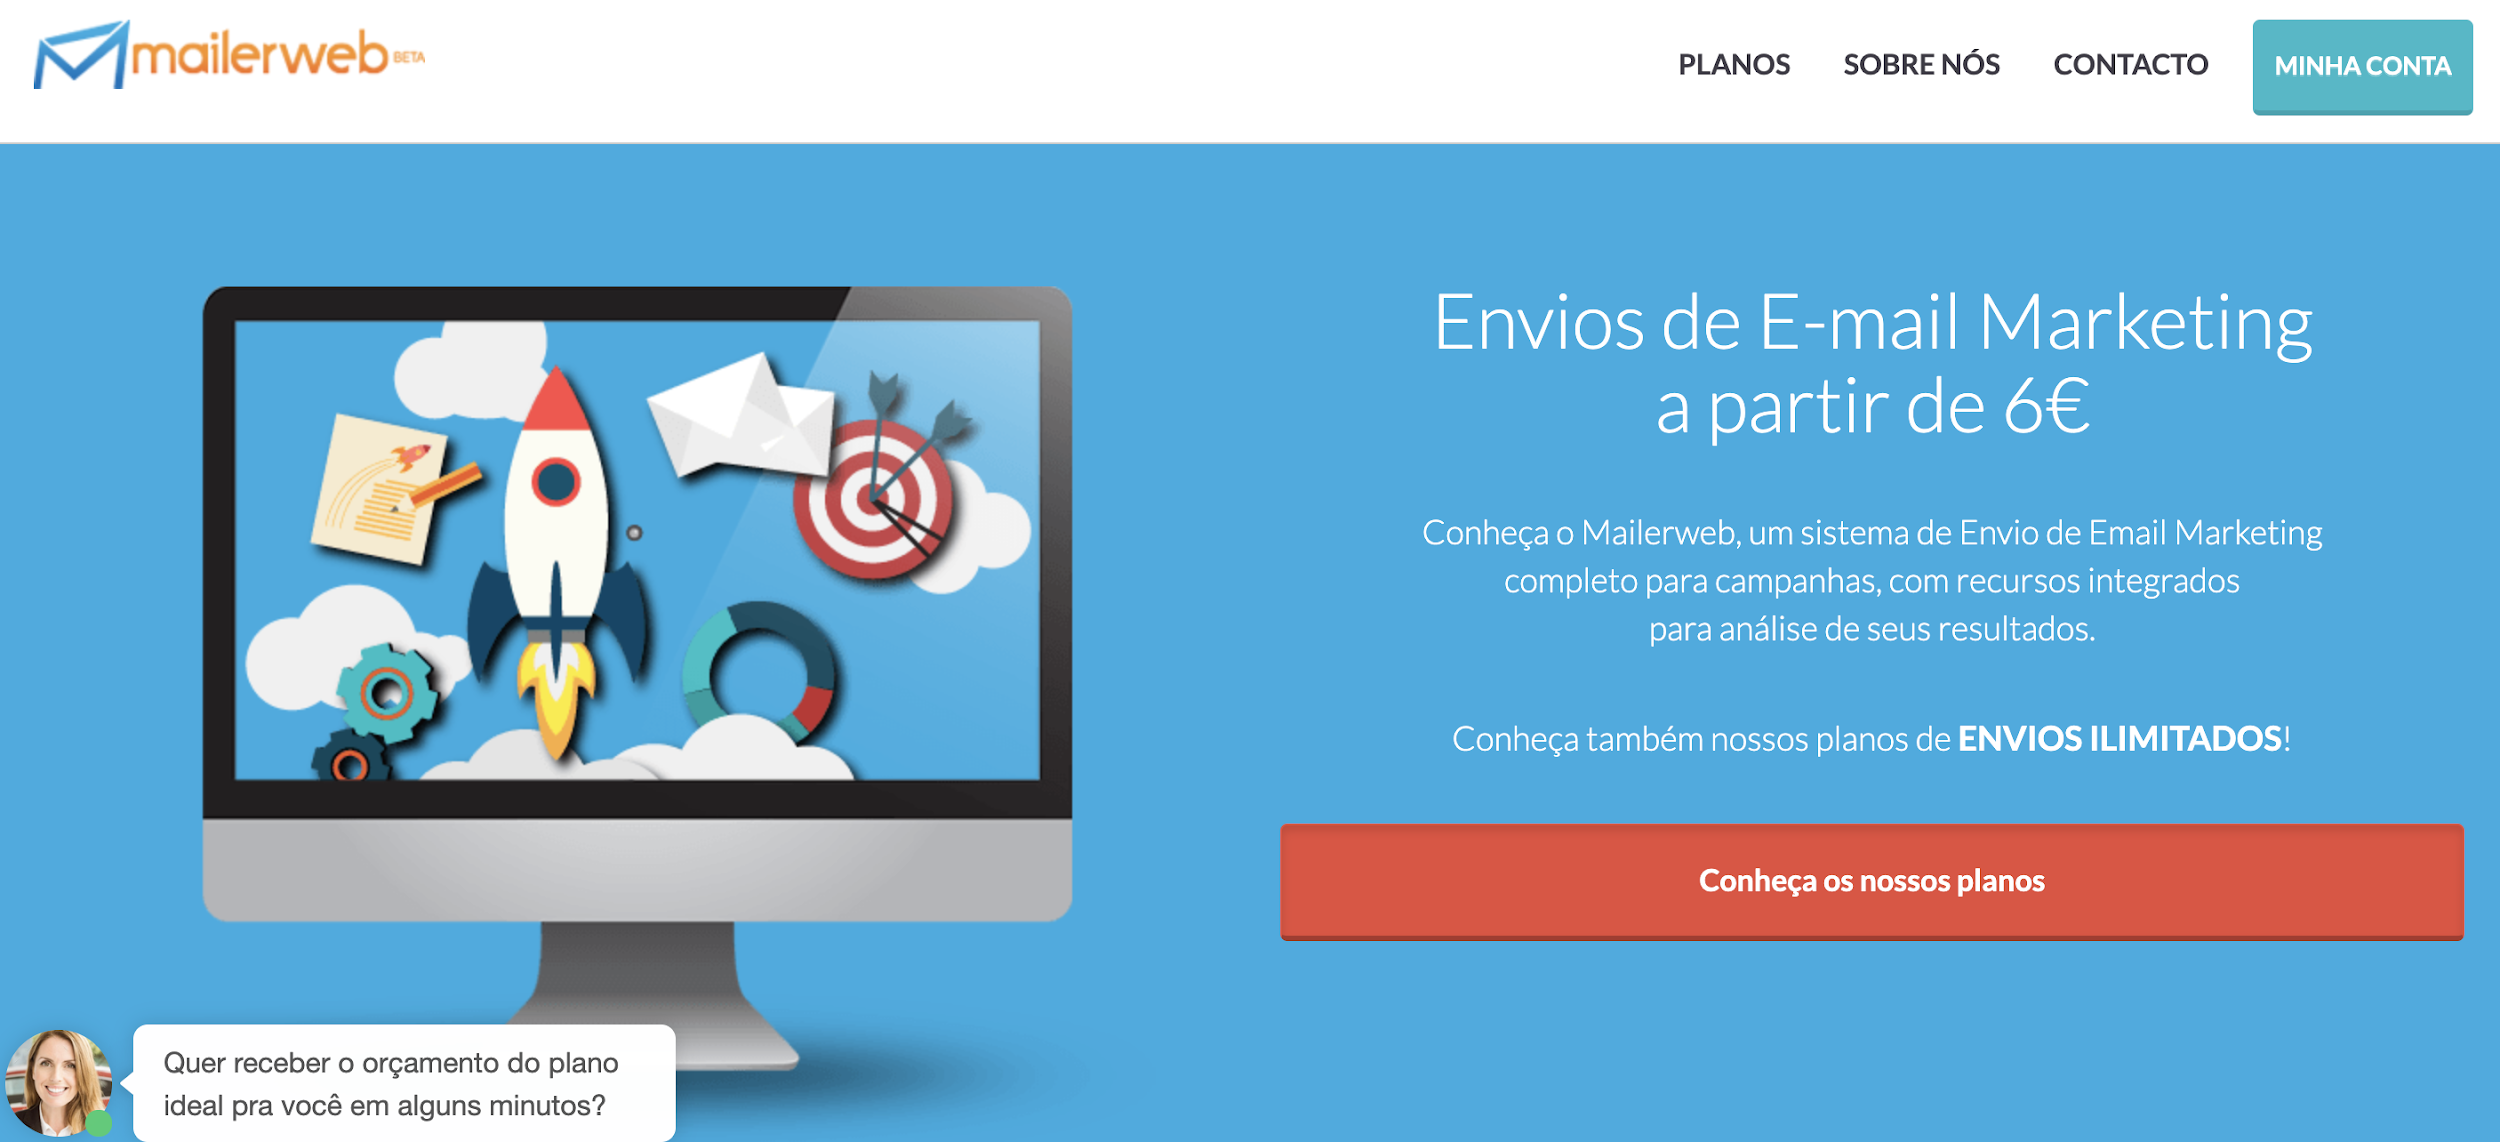 Mailer Web como exemplo de ferramenta de email marketing